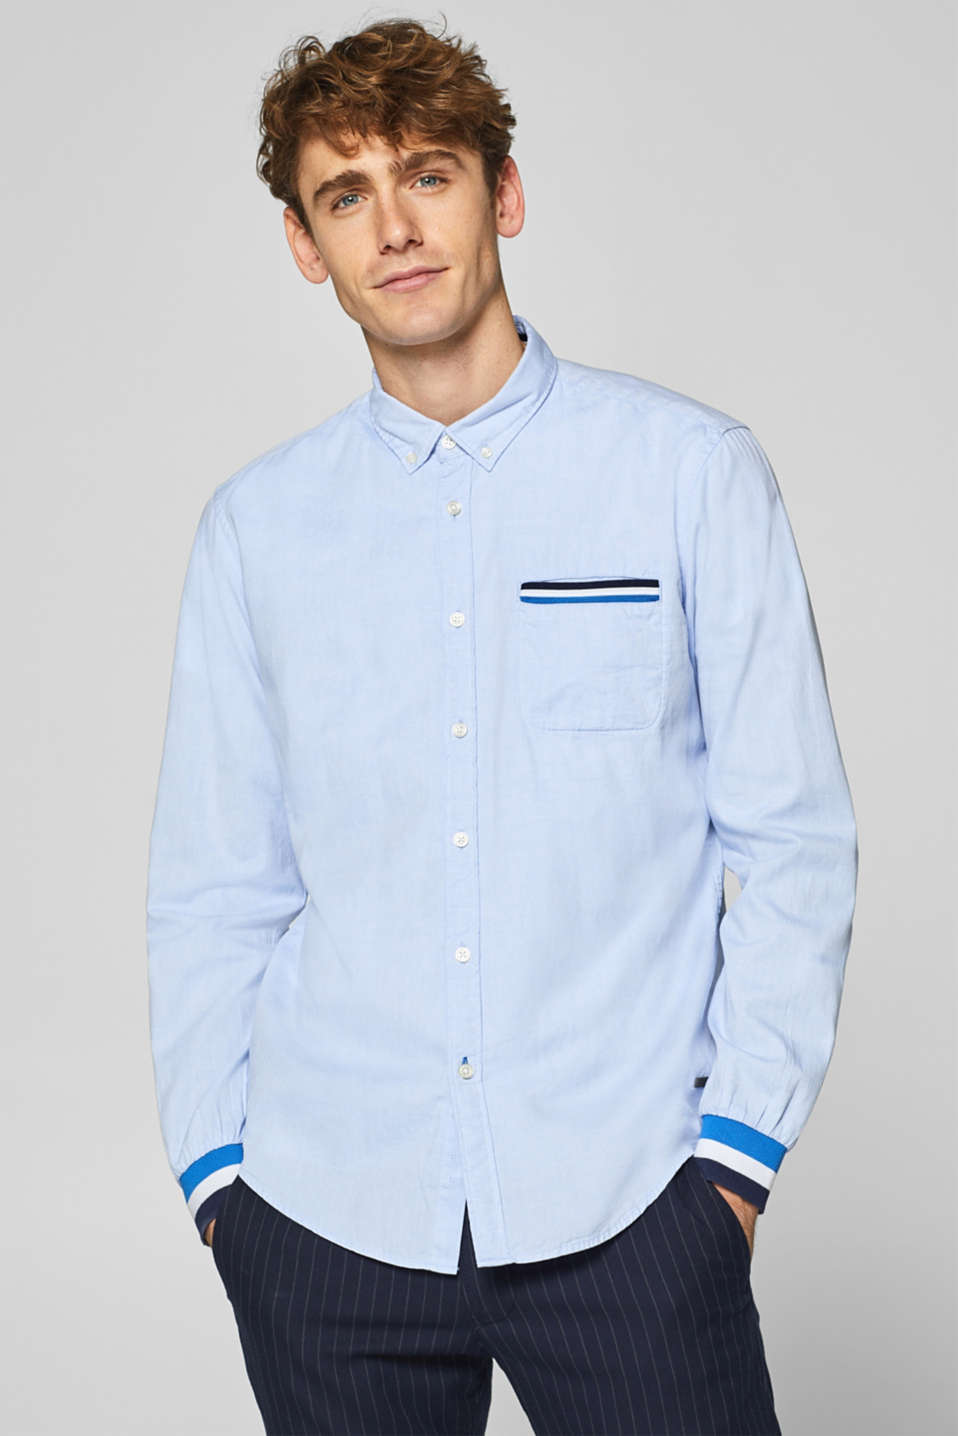 edc - 100% cotton shirt with a striped border